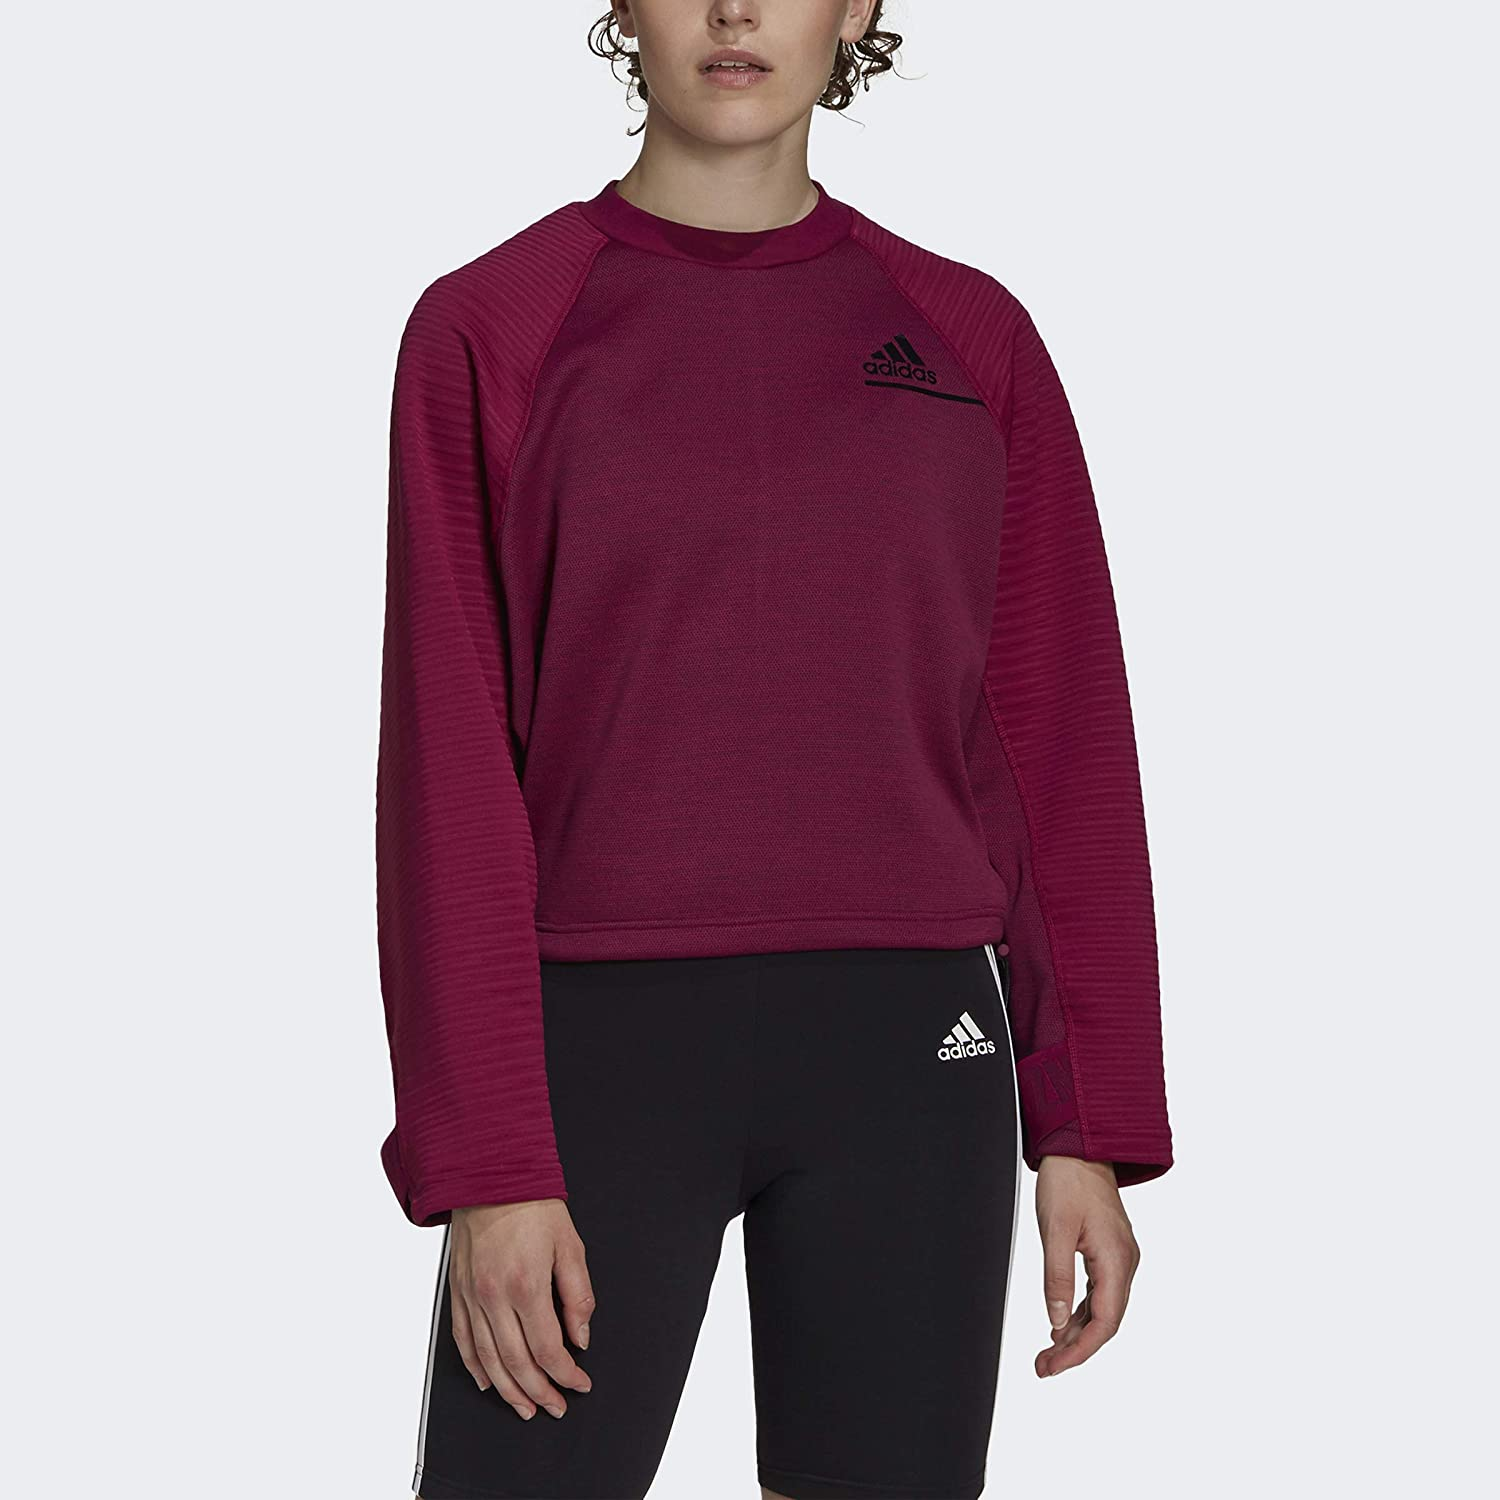 adidas Women's Z.n.e. Cold.rdy Be super welcome Miami Mall Athletics Crew Sweatshirt